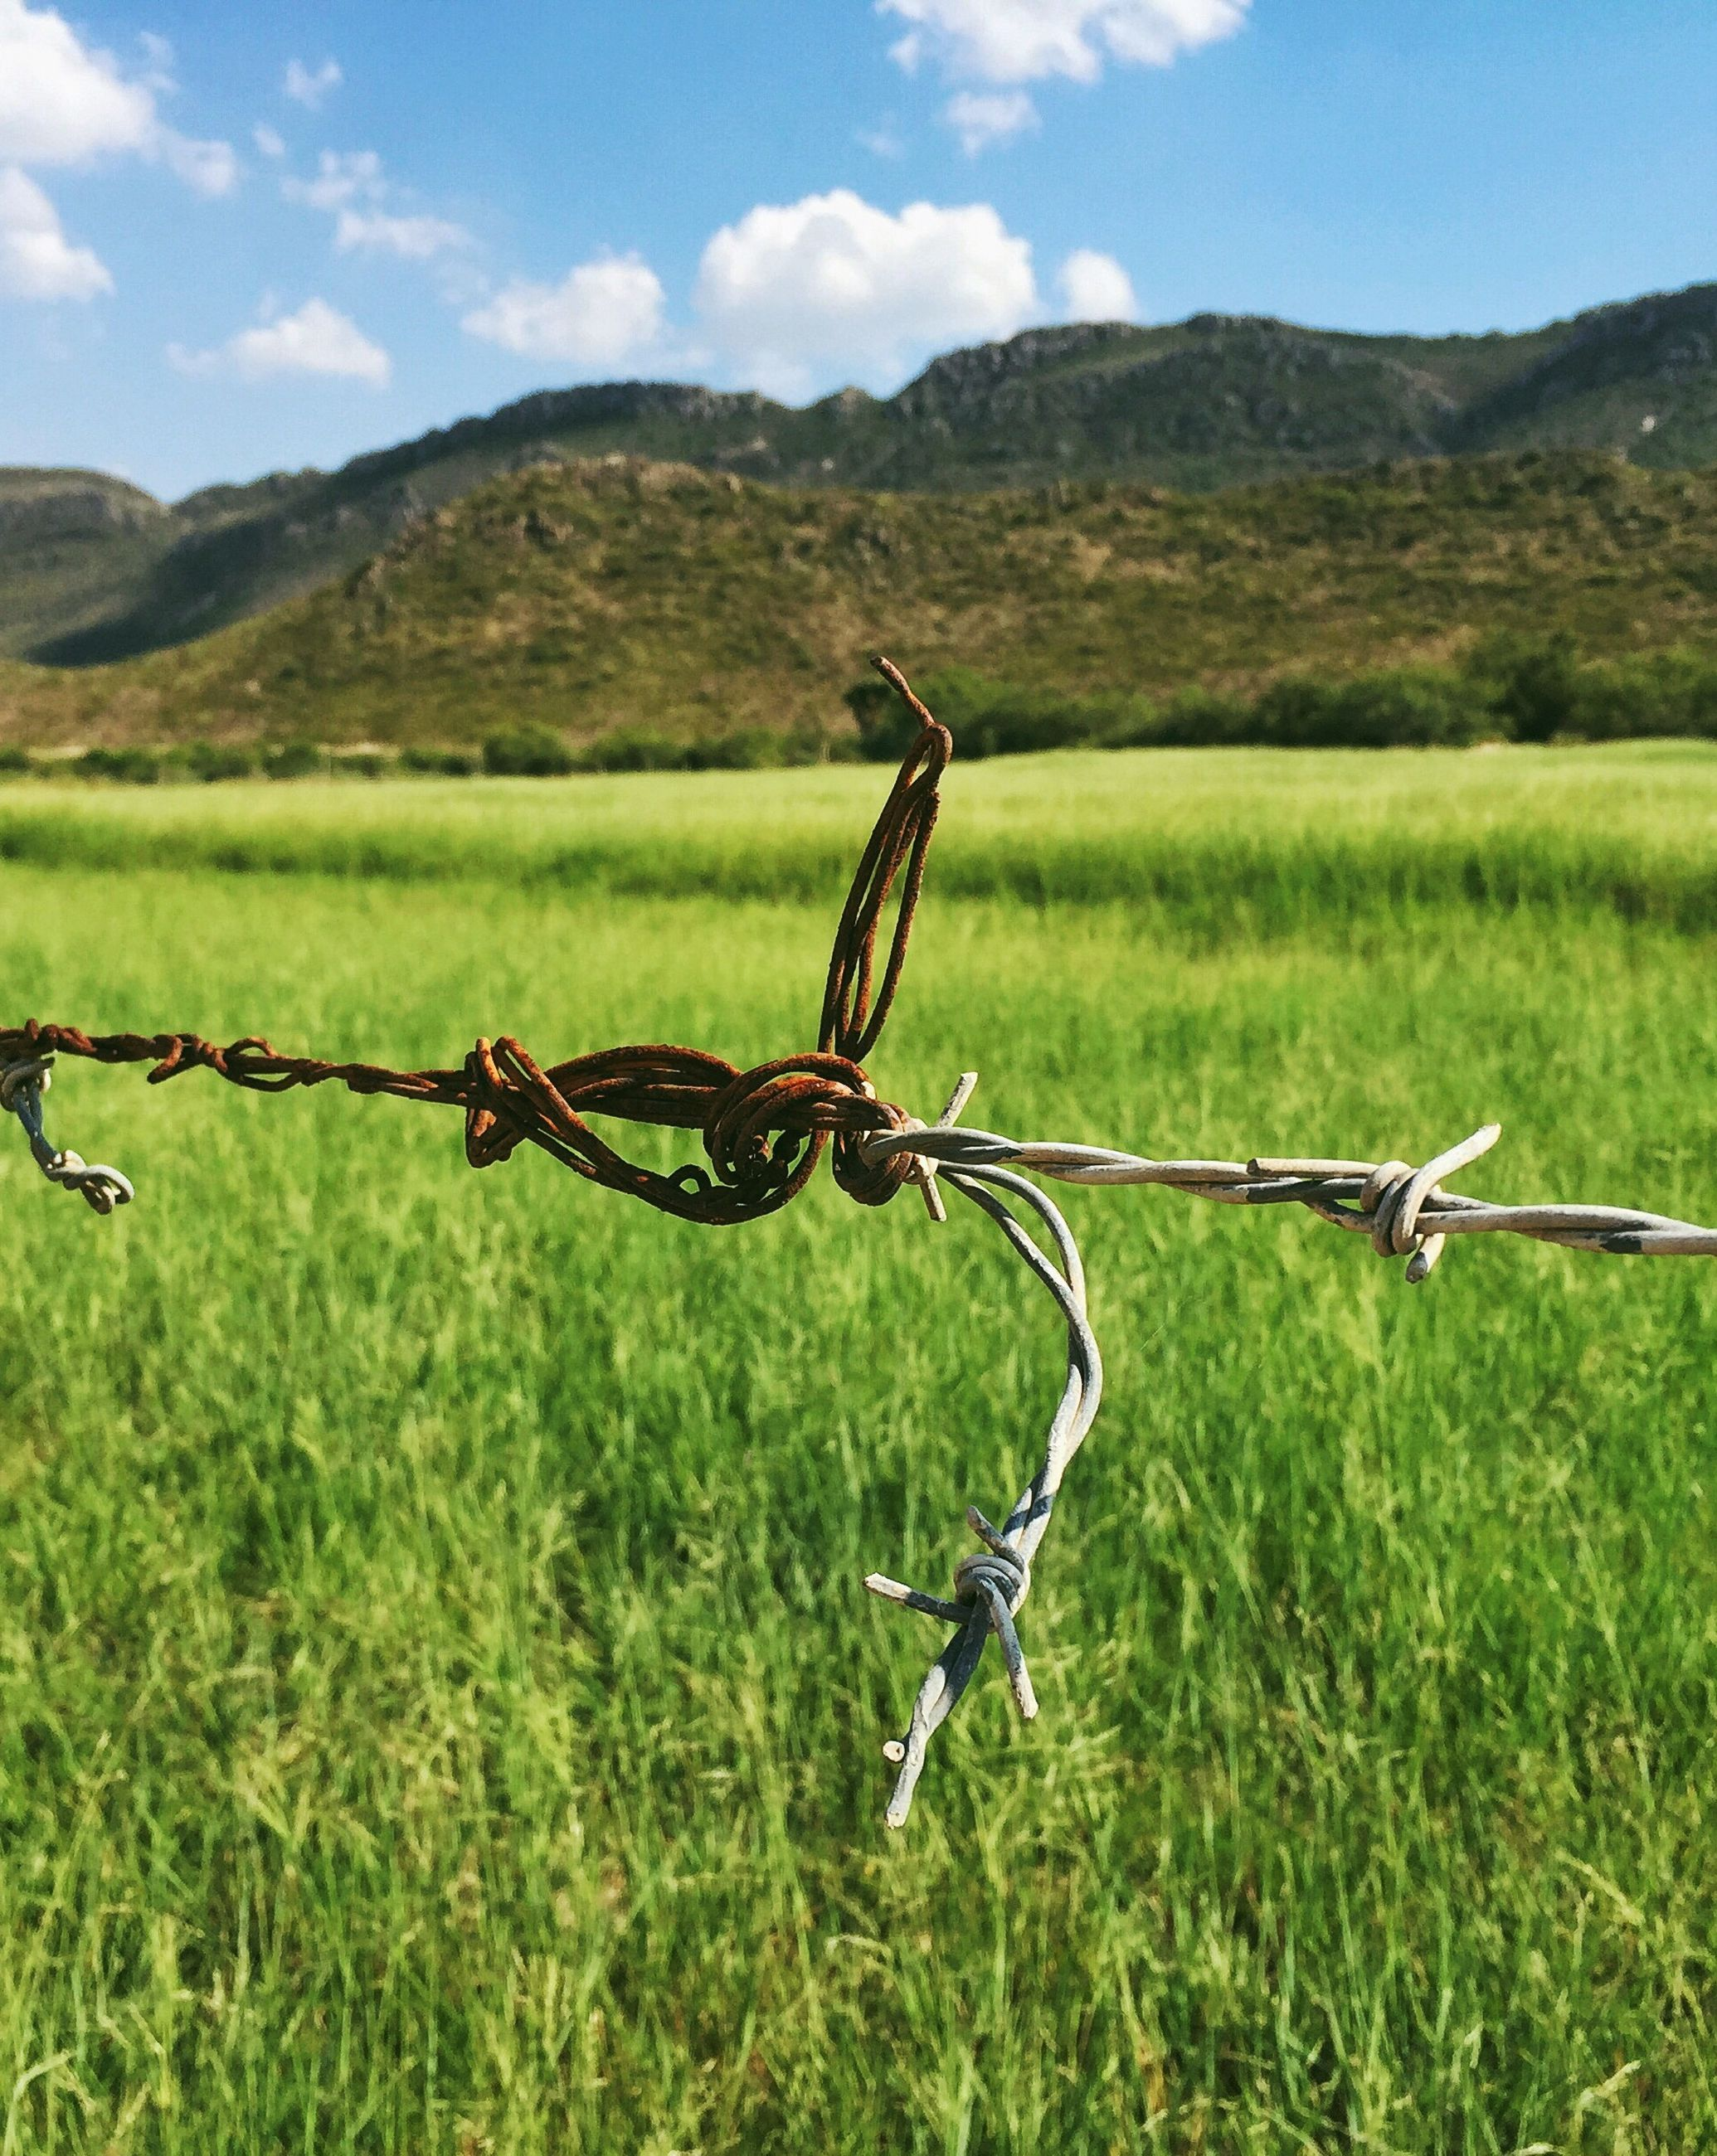 barbed wire, fence, landscape, field, safety, grass, mountain, protection, security, tranquility, sky, nature, tranquil scene, grassy, focus on foreground, beauty in nature, day, metal, scenics, outdoors